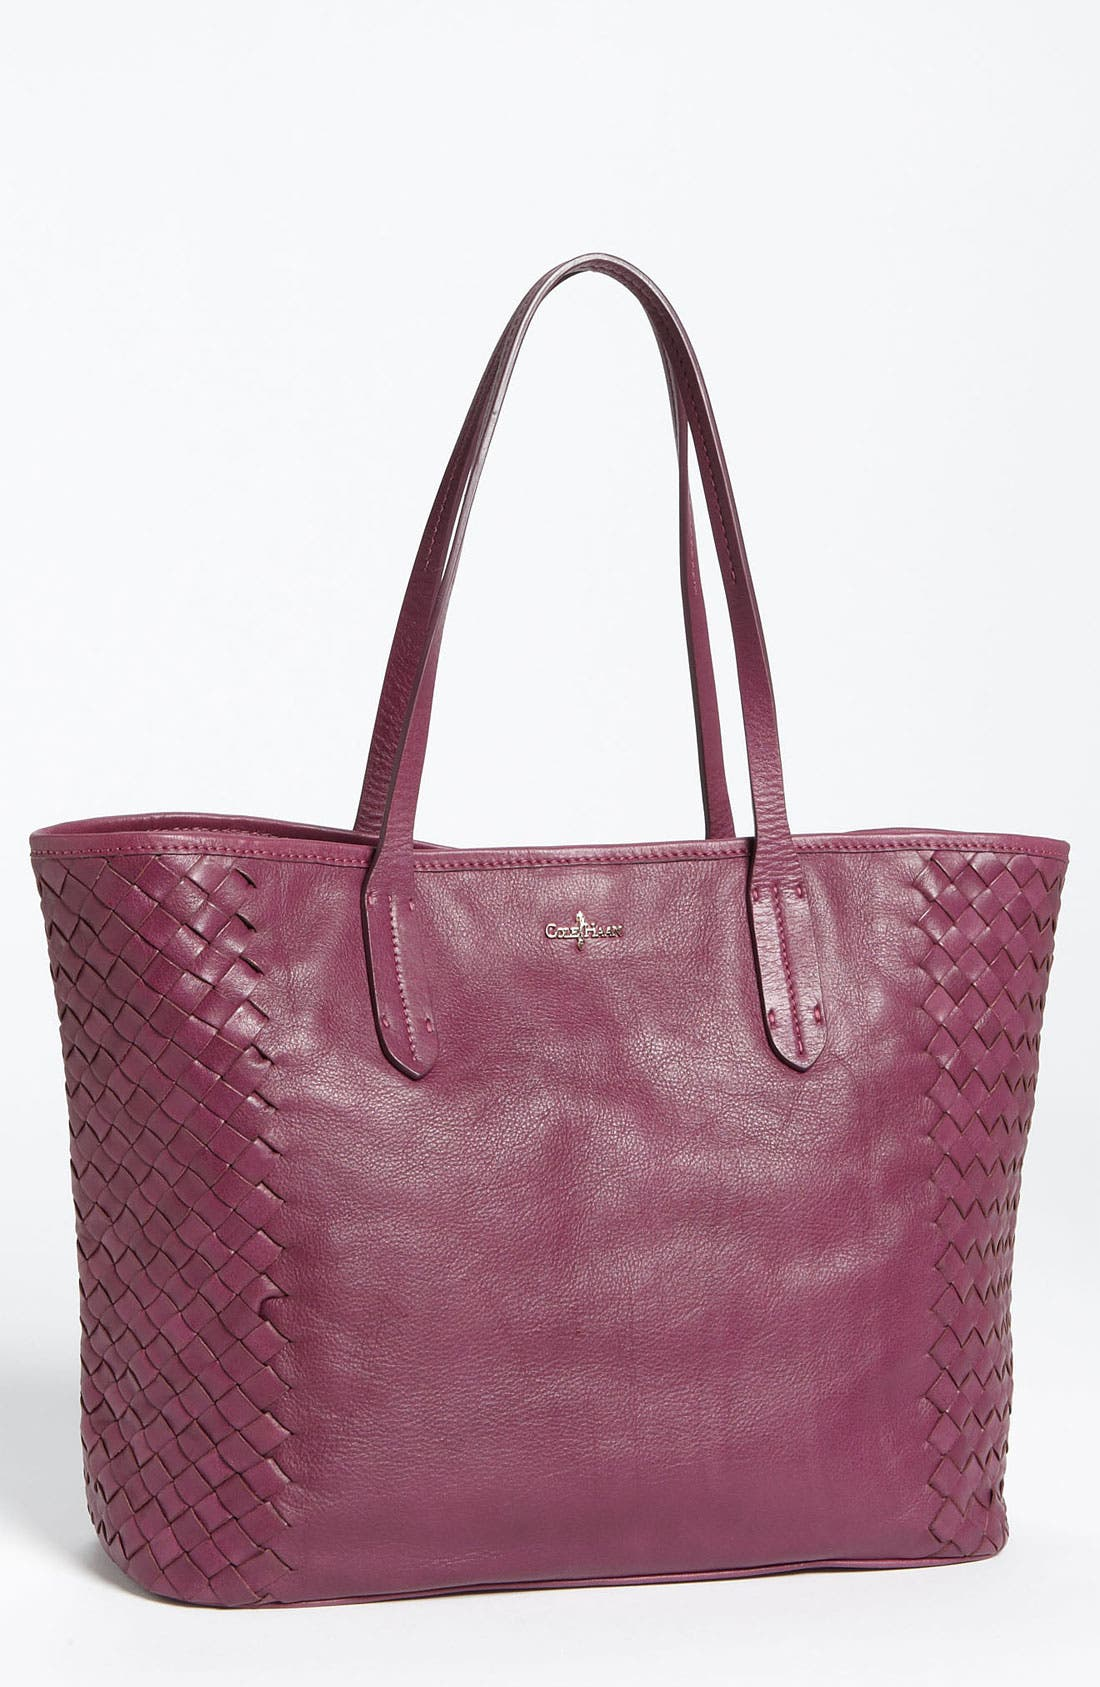 Alternate Image 1 Selected - Cole Haan 'Victoria' Tote